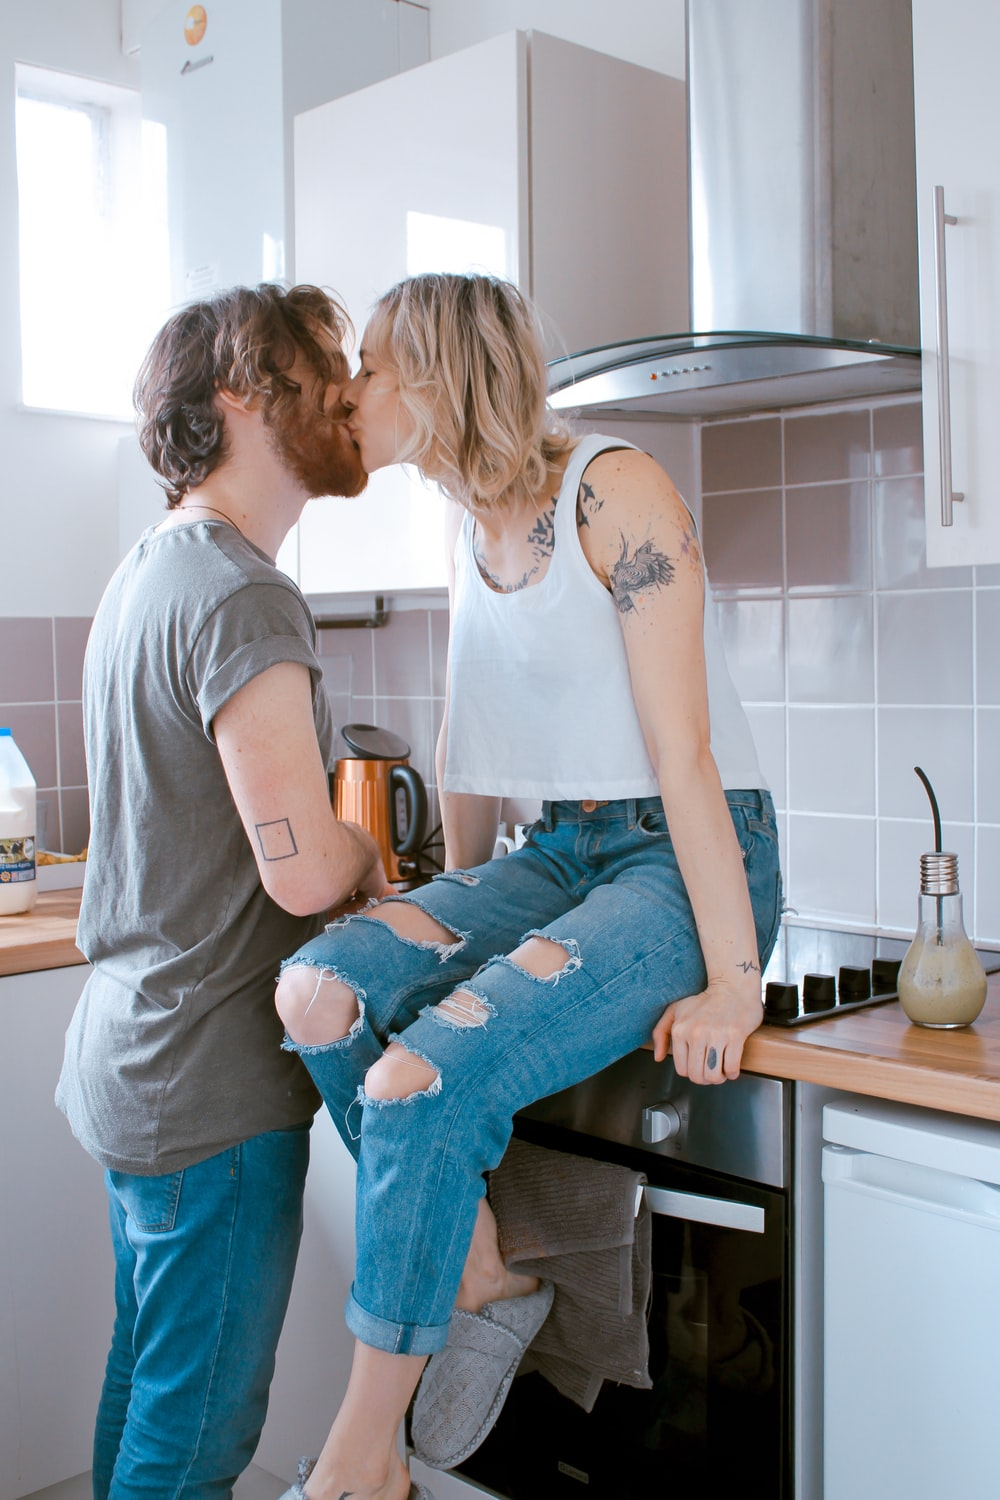 man and woman kissing inside kitchen